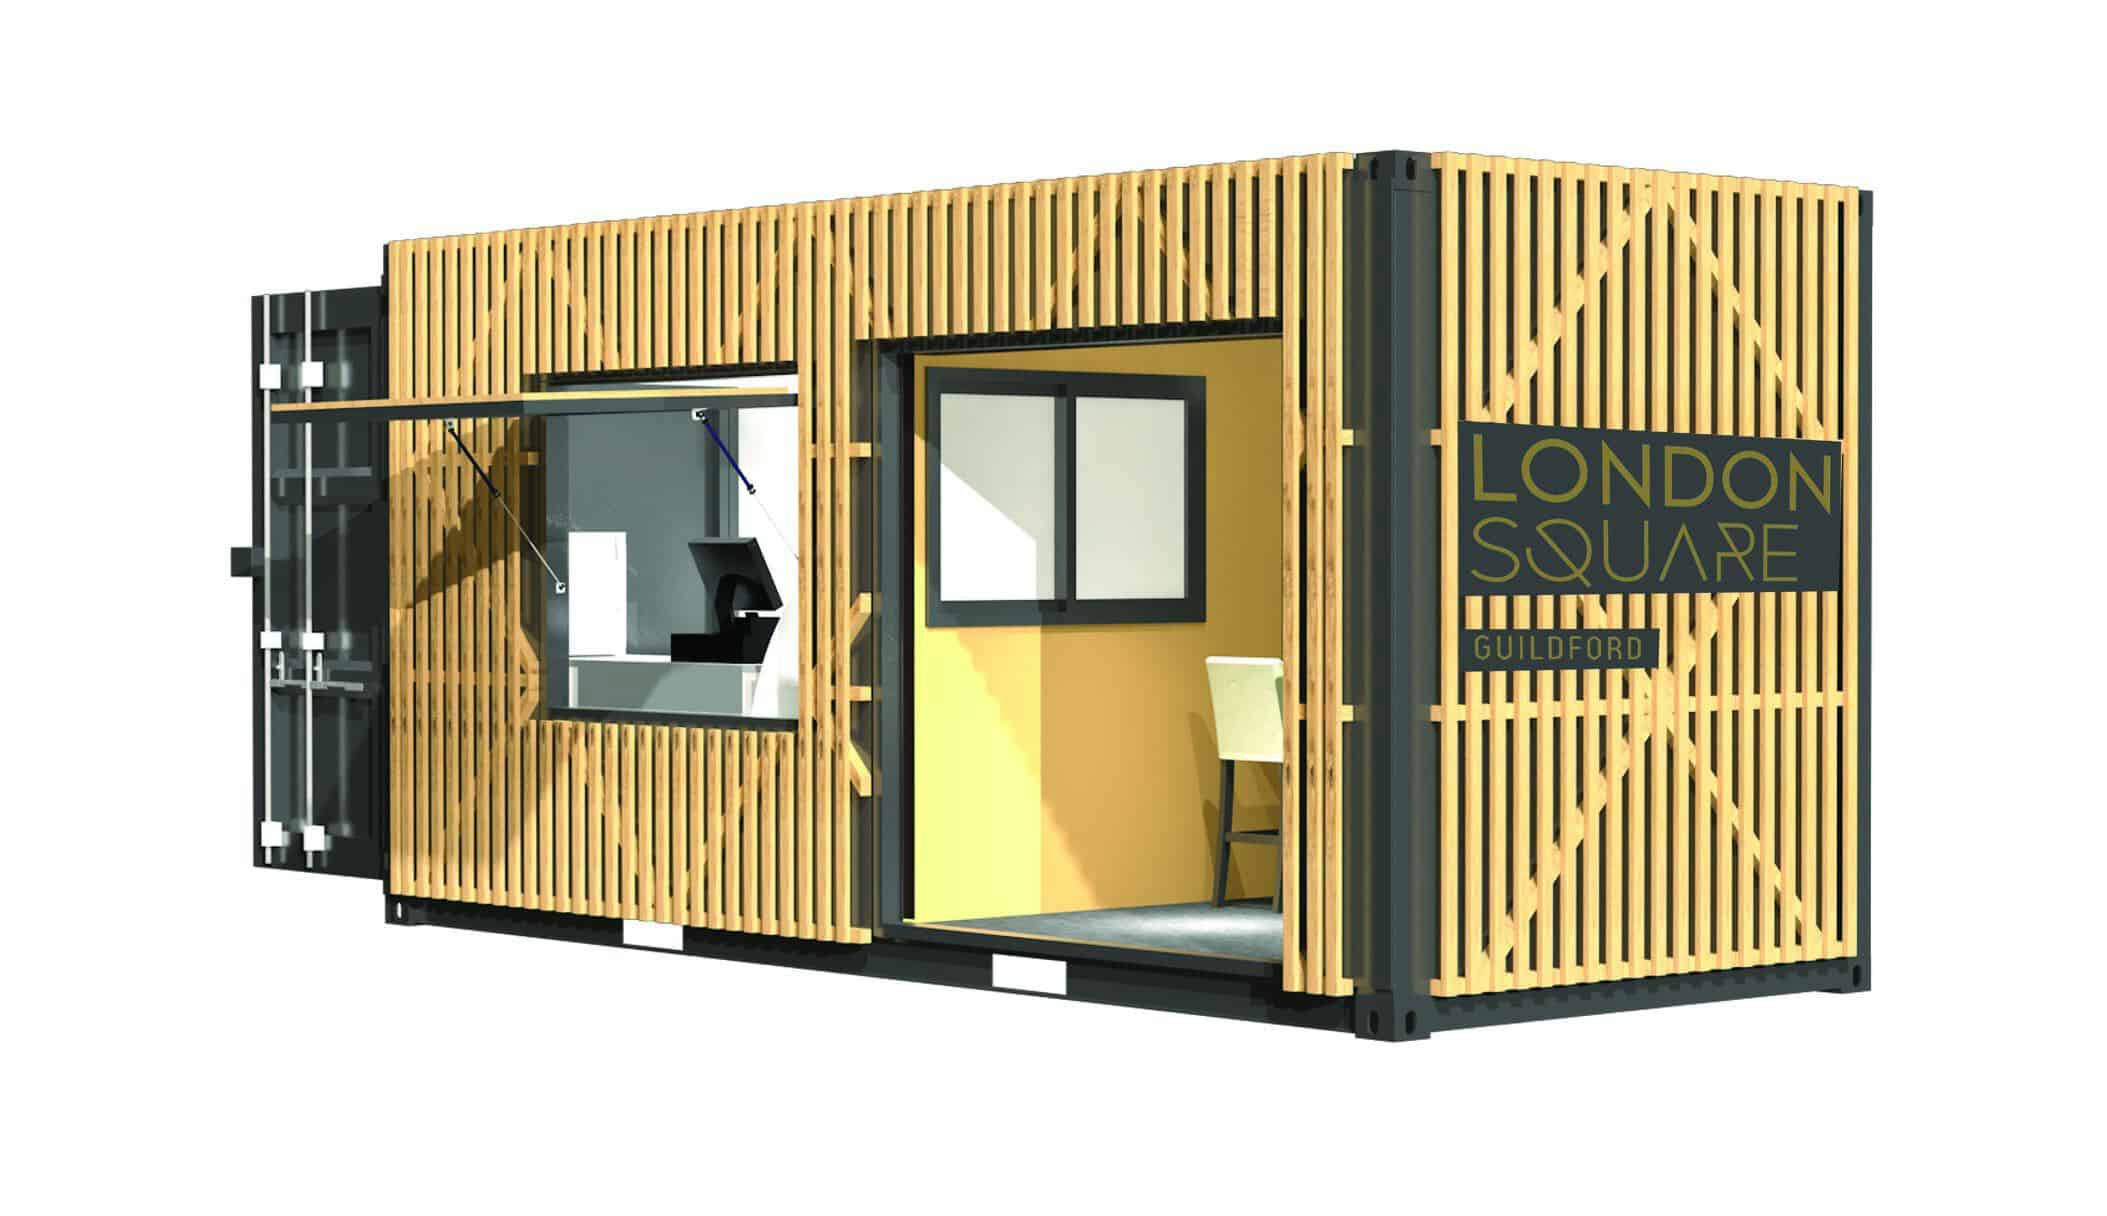 Concept design of shipping container cafe conversion